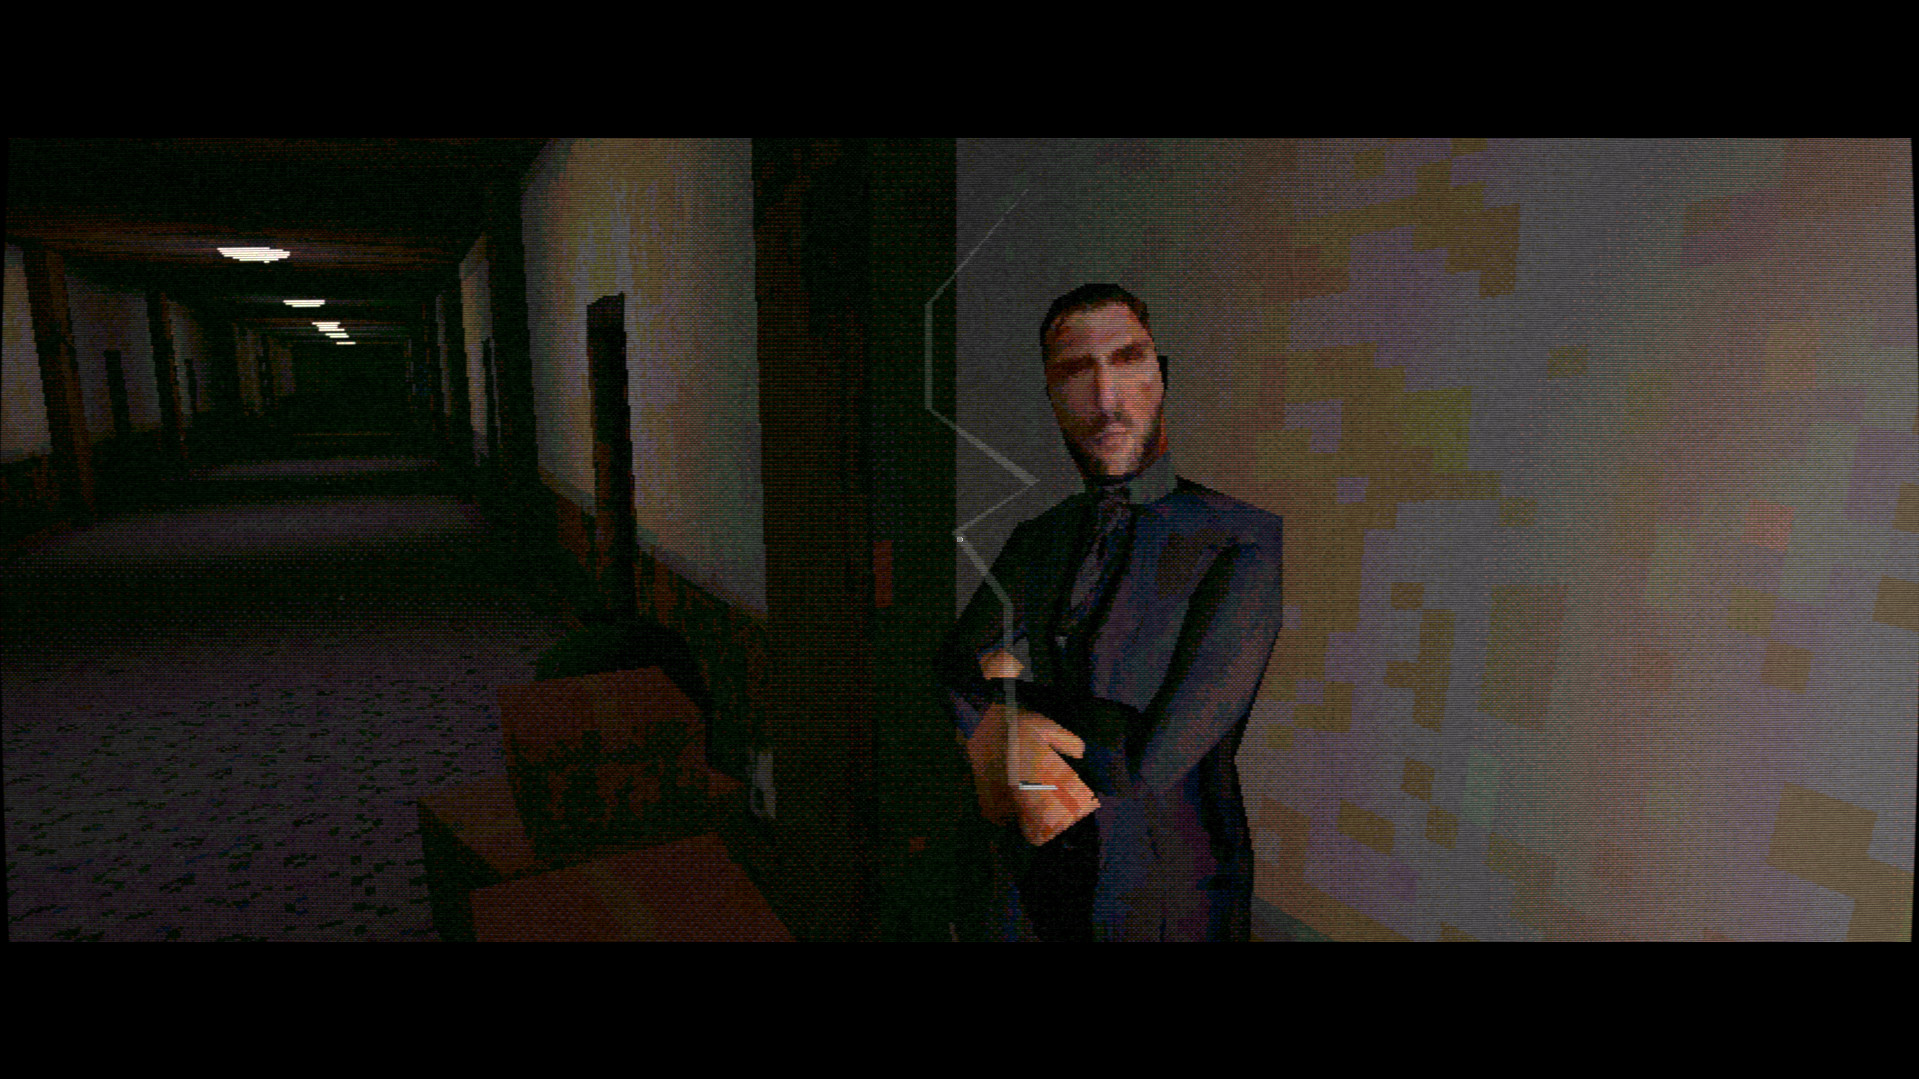 Nightslink - a low poly model of a character stands in the halls of an apartment building. He is a young man smoking a cigarette.